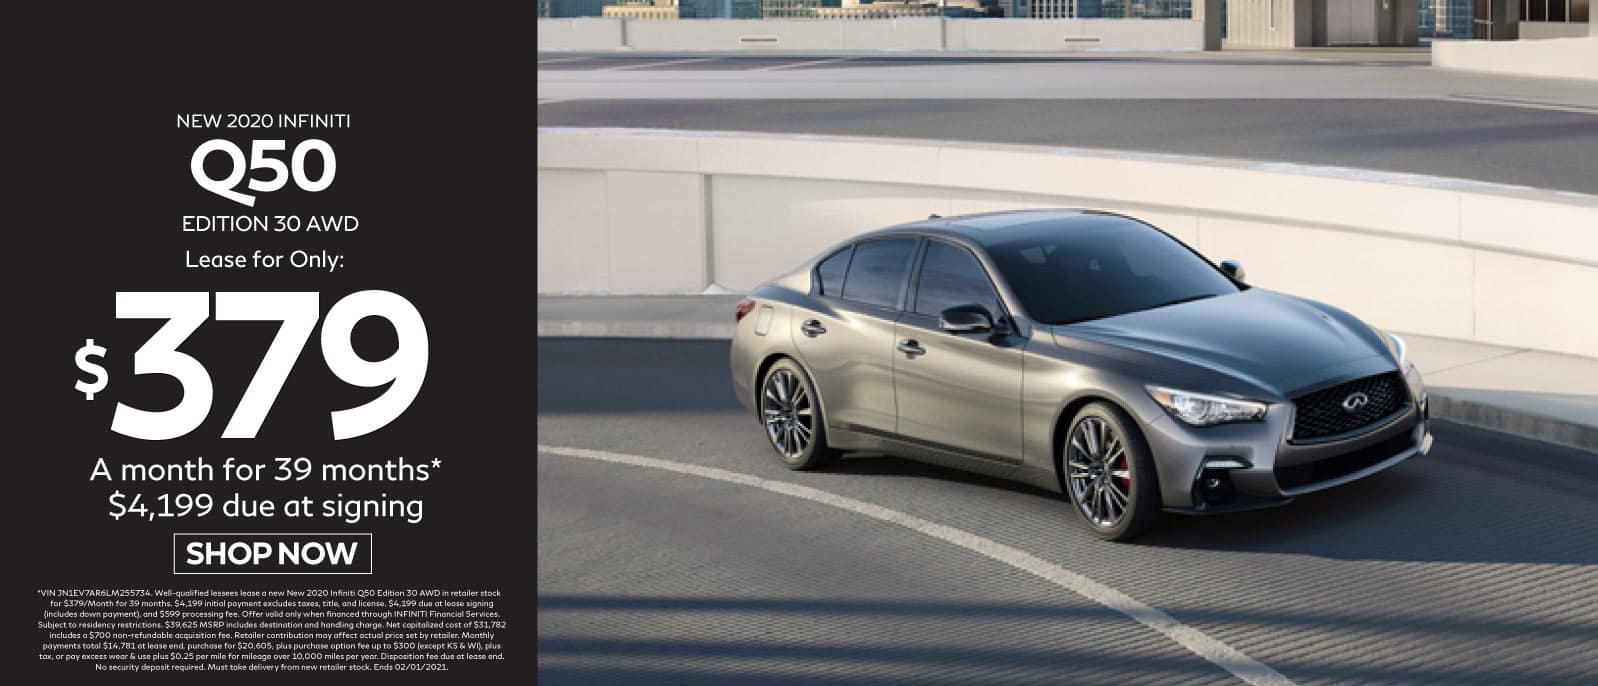 New 2020 INFINITI Q50 - Lease for only $379 per month - Shop Now